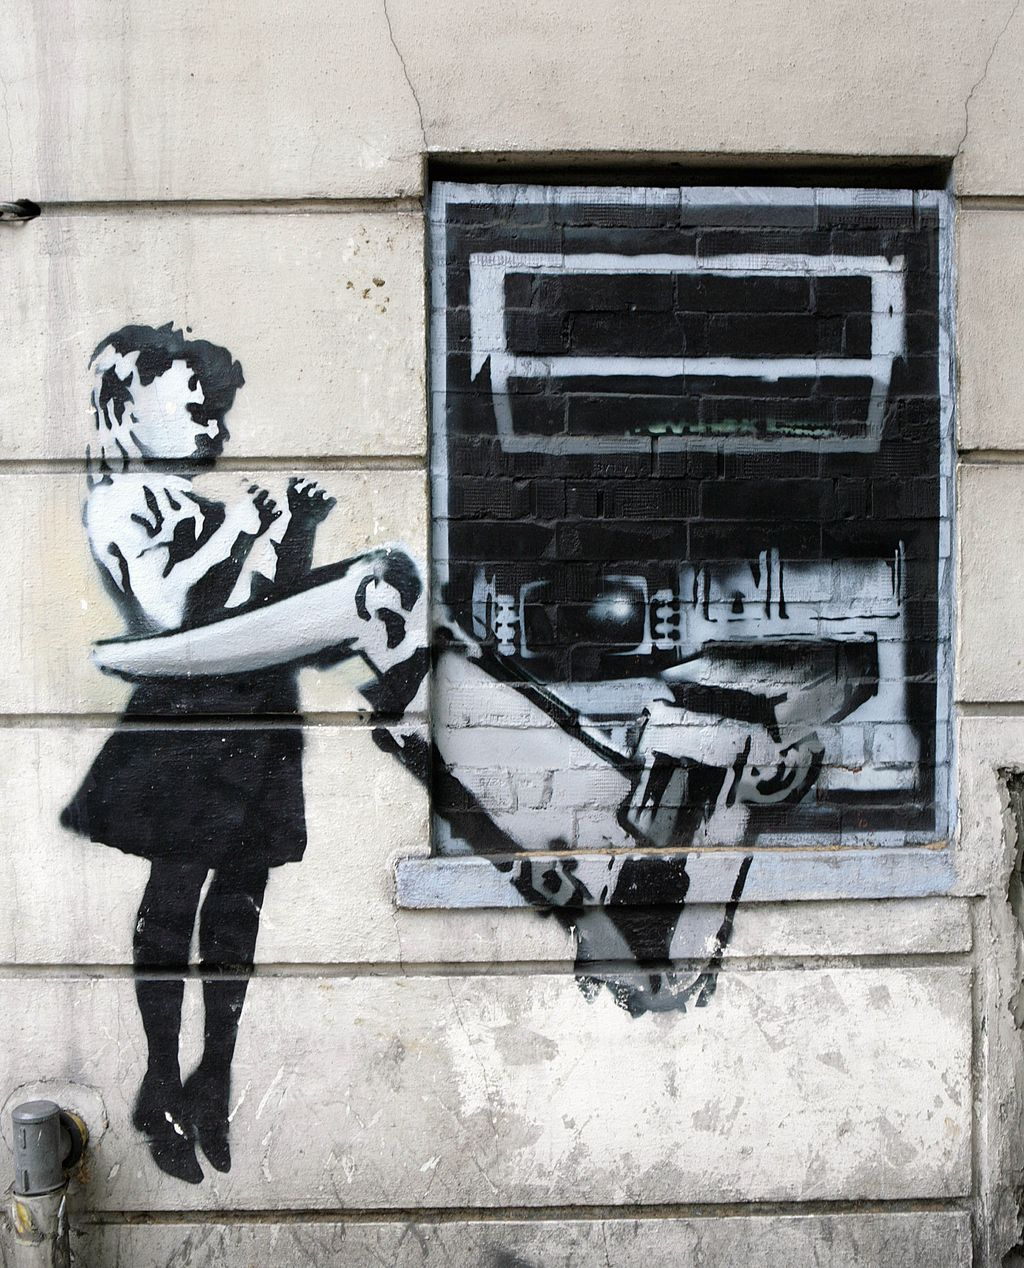 23 Key Facts You Need To Know About Banksy Banksy Art Street Art Banksy Street Art